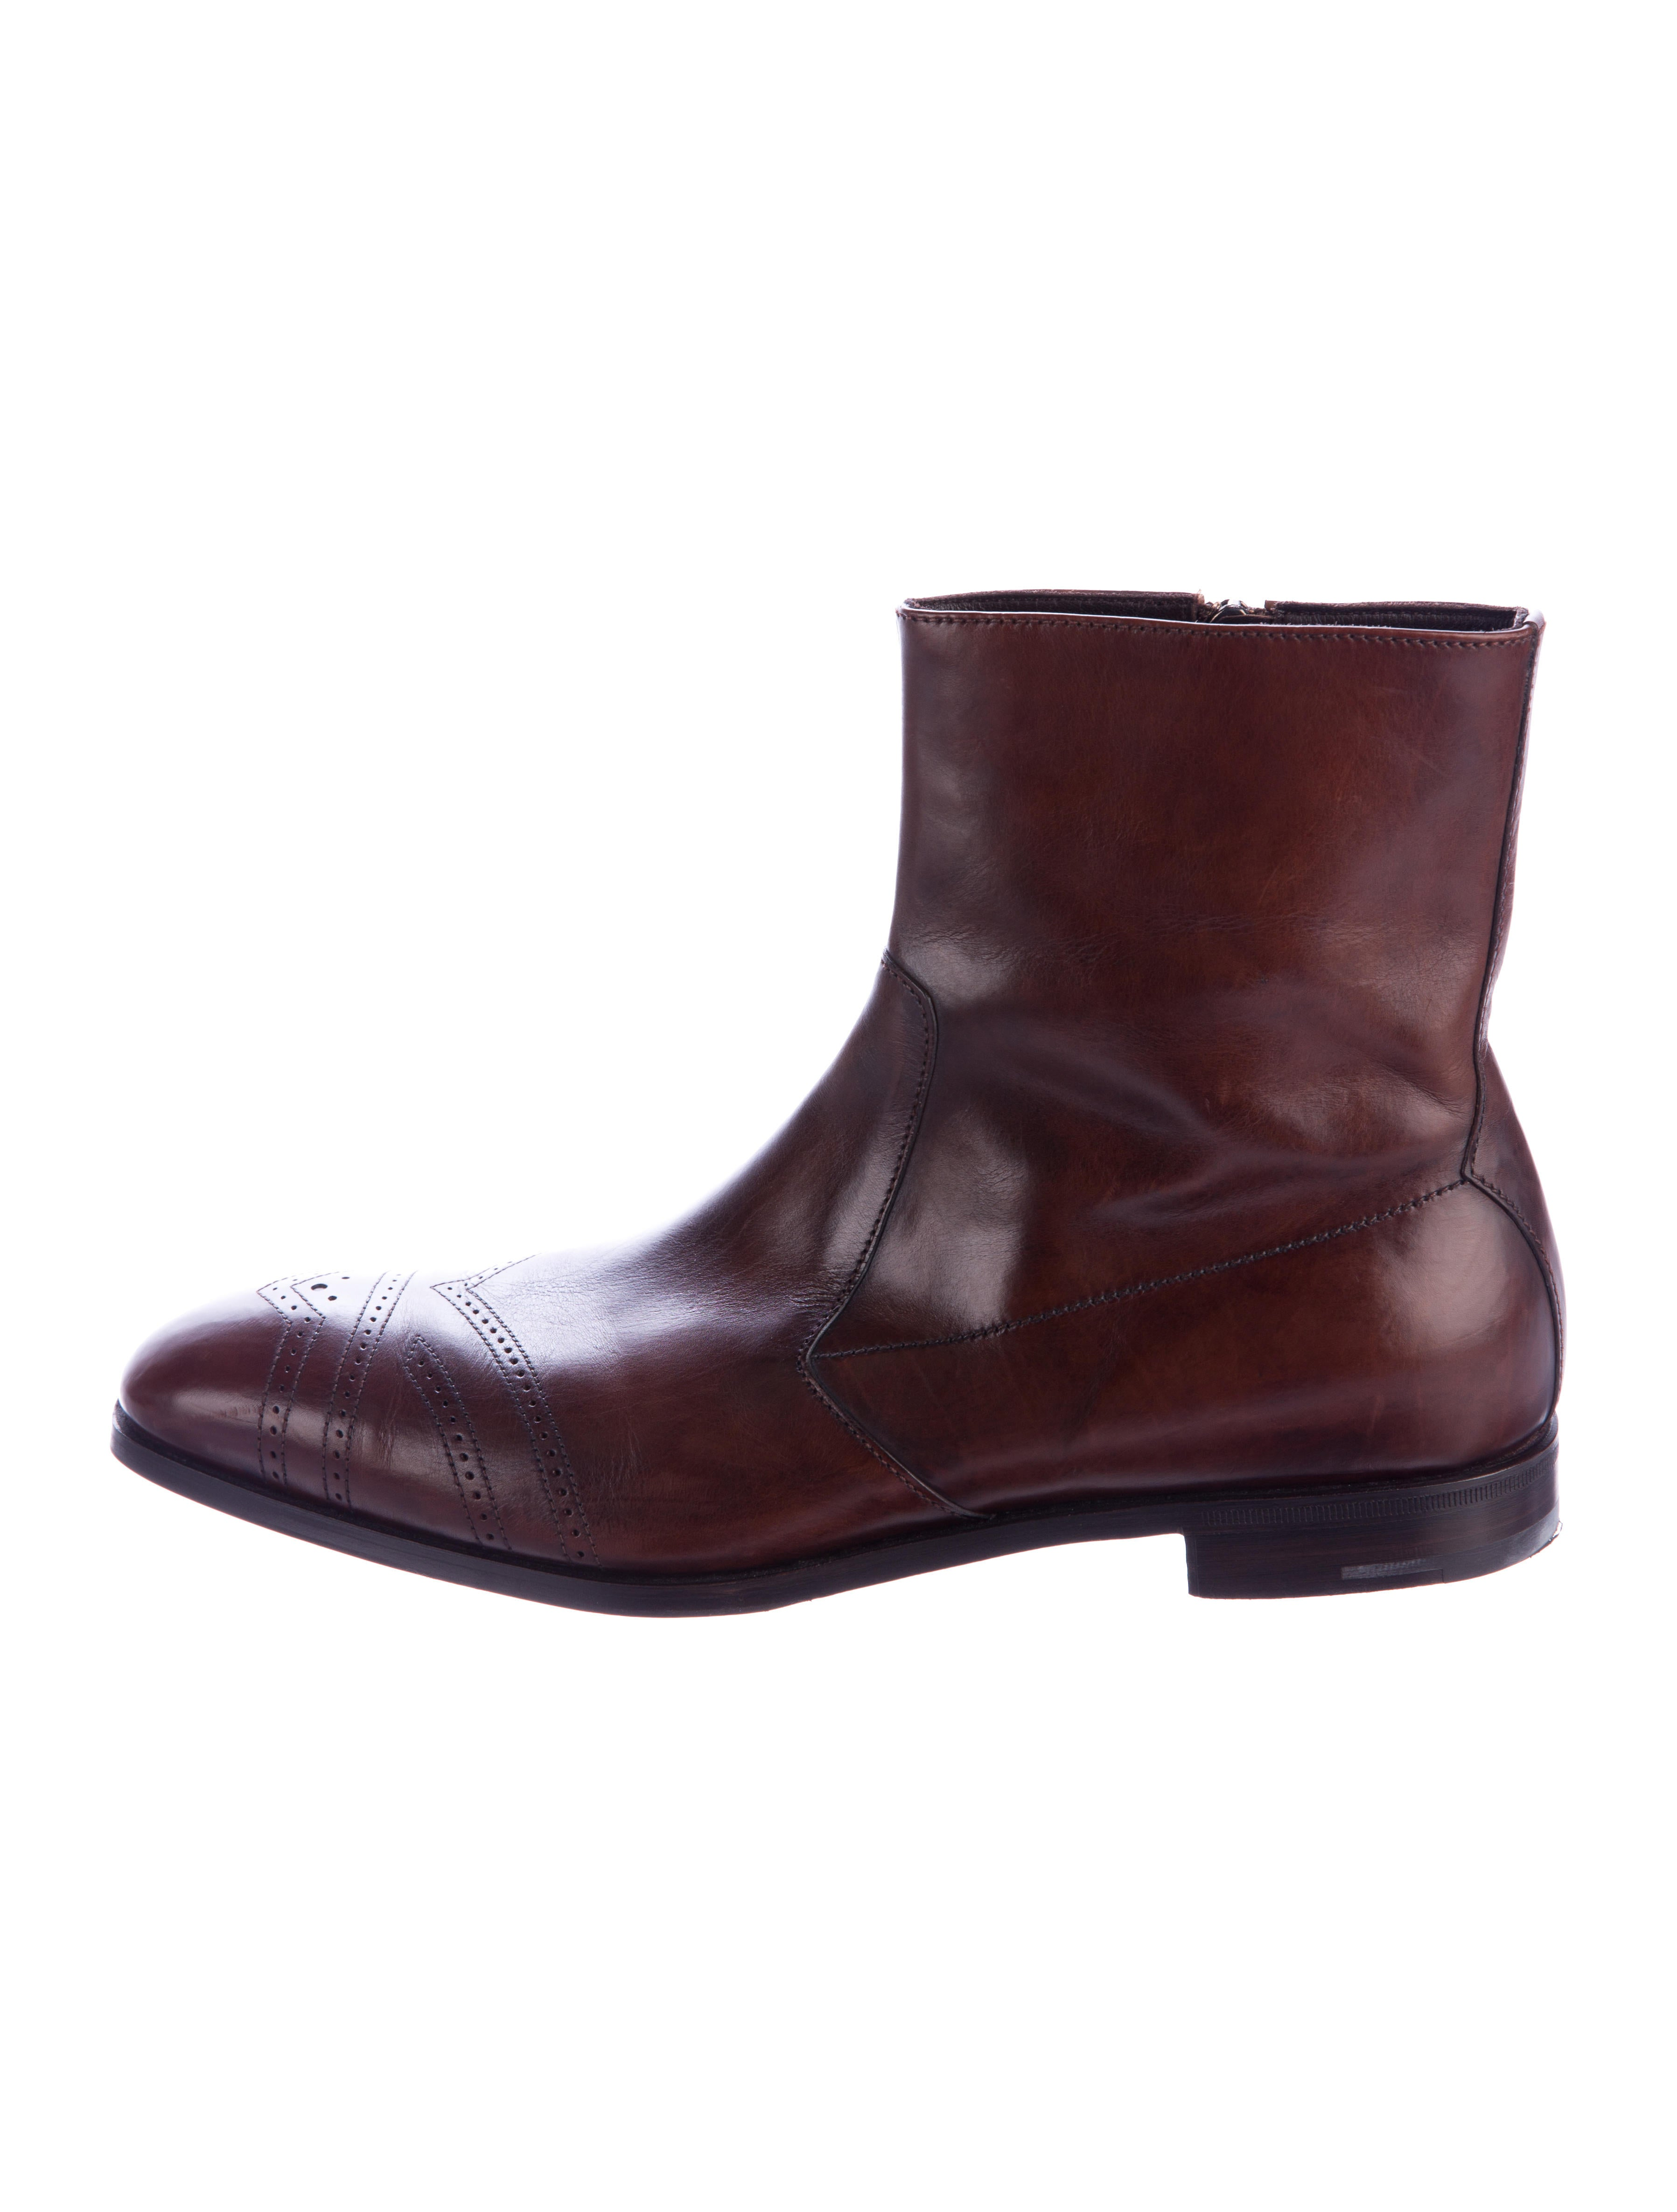 prada leather ankle boots shoes pra151194 the realreal